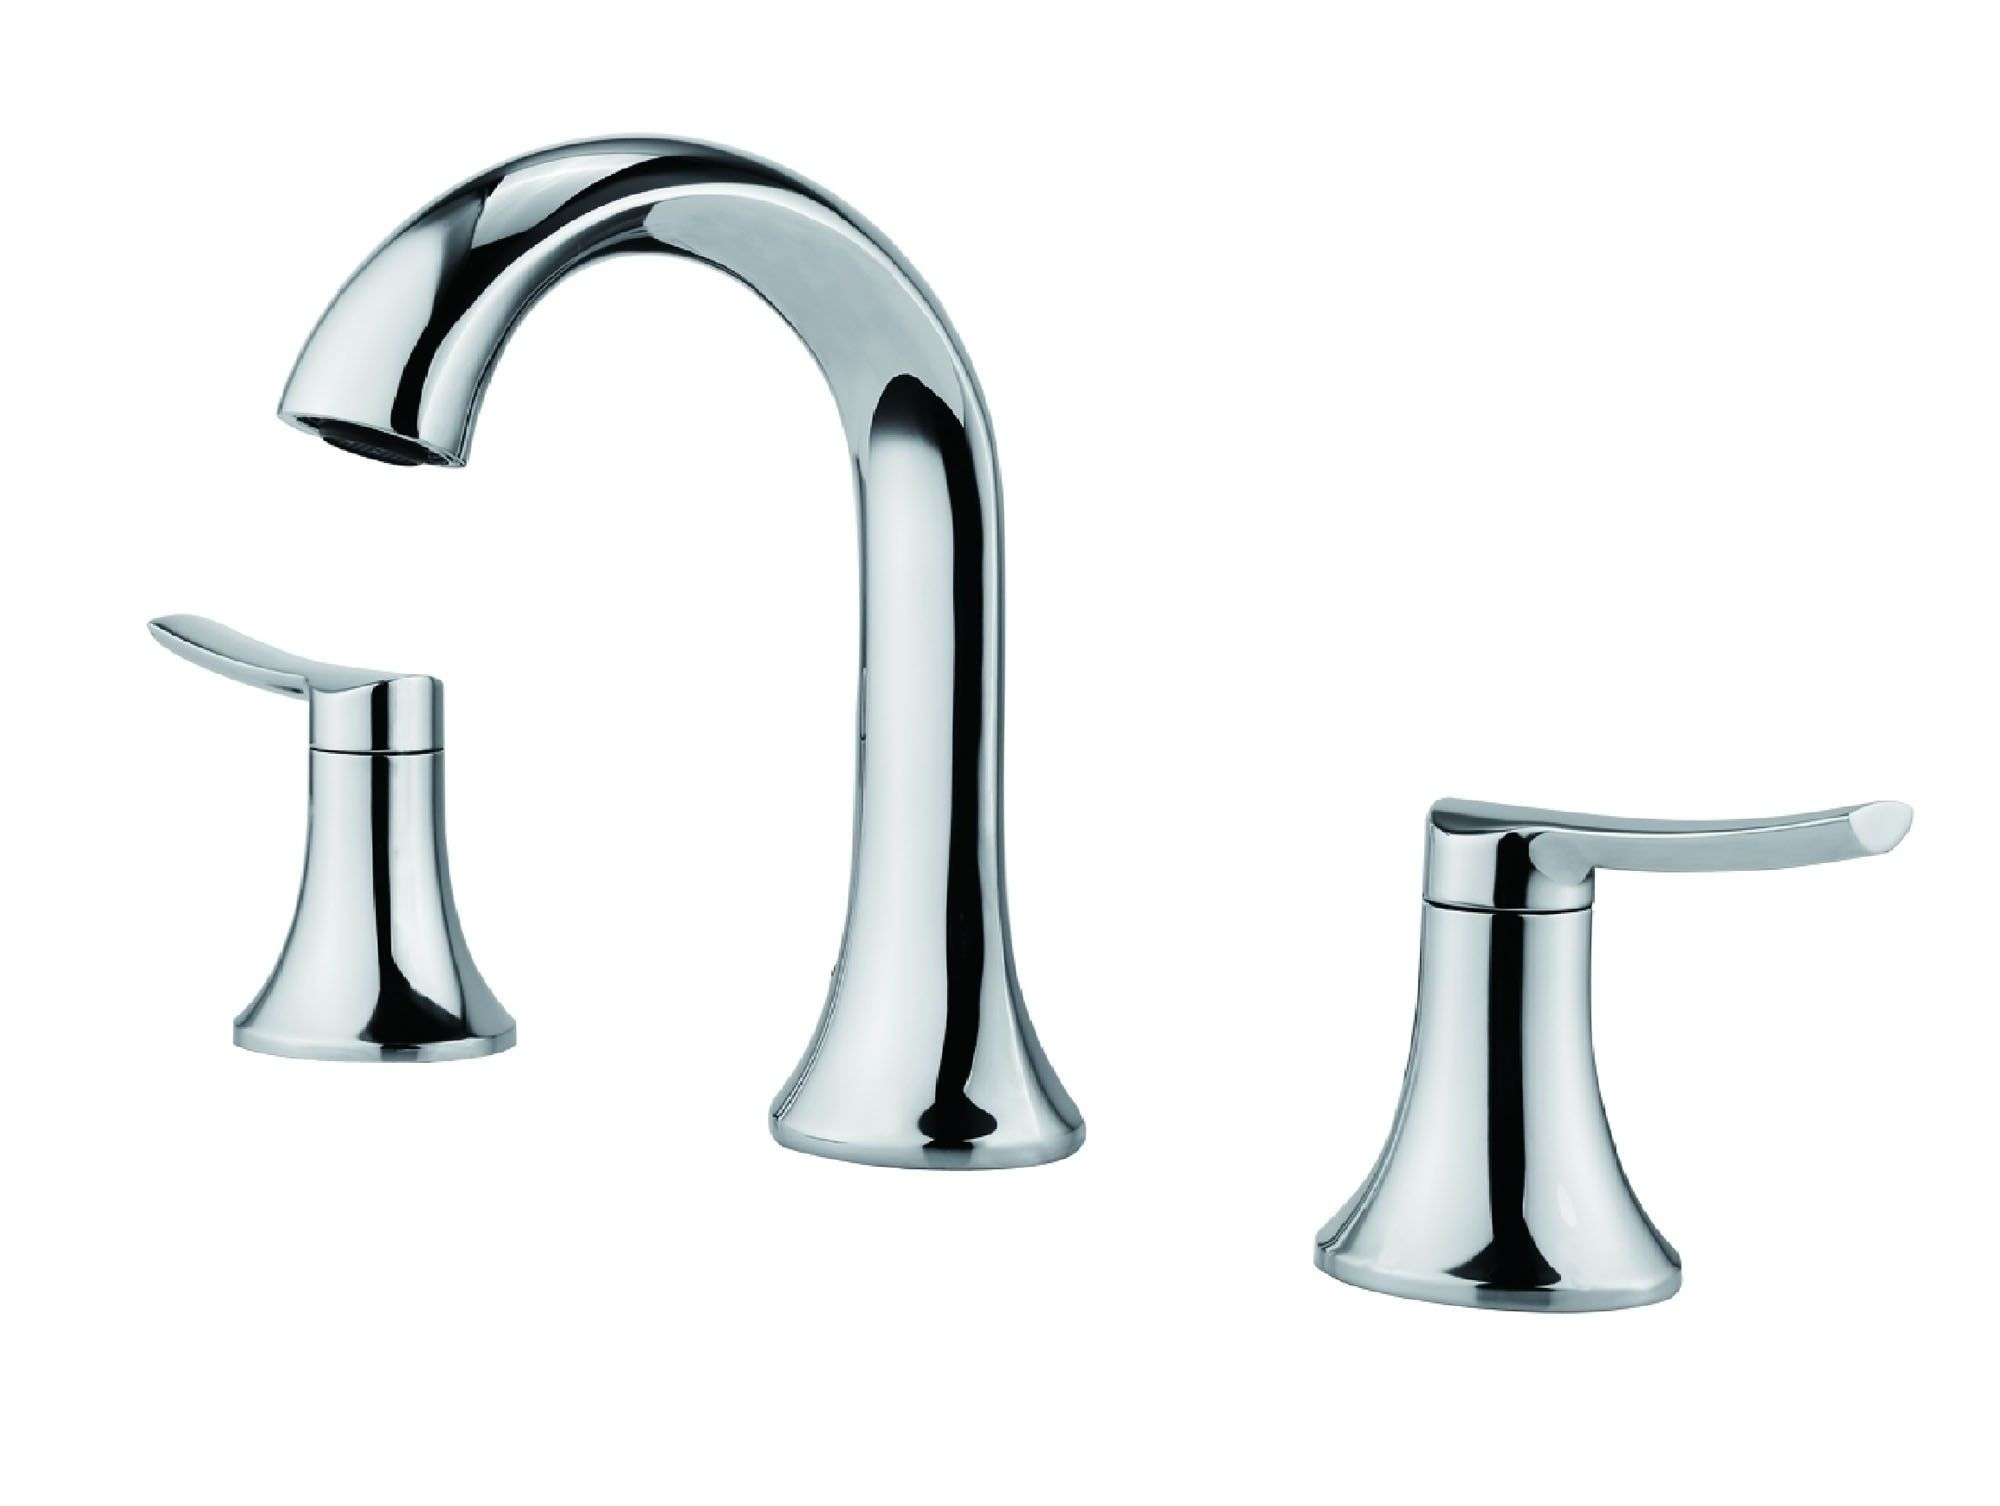 Spring 1b408bv5c Two Lever Handle Lavatory Faucet With Pop Up In Chrome Lavatory Faucet Faucet Bathroom Sink Faucets [ 1506 x 2000 Pixel ]